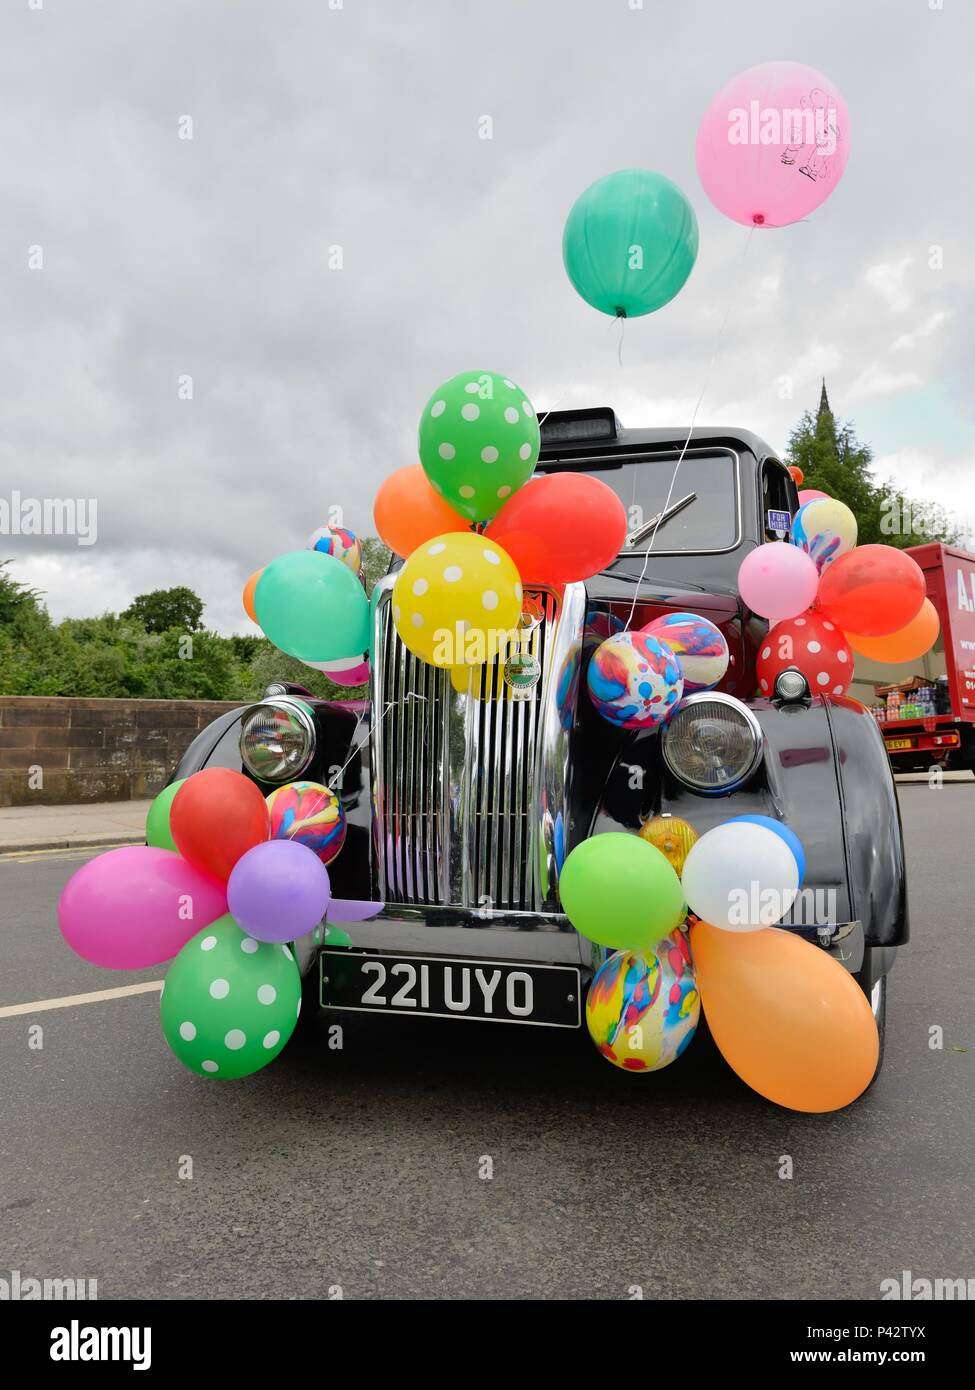 Glasgow, Scotland, UK. 20th, June, 2018. Taxi drivers today decorated their cabs for the annual Taxi run taking disabled children on a day trip to Troon in Ayrshire. Stock Photo